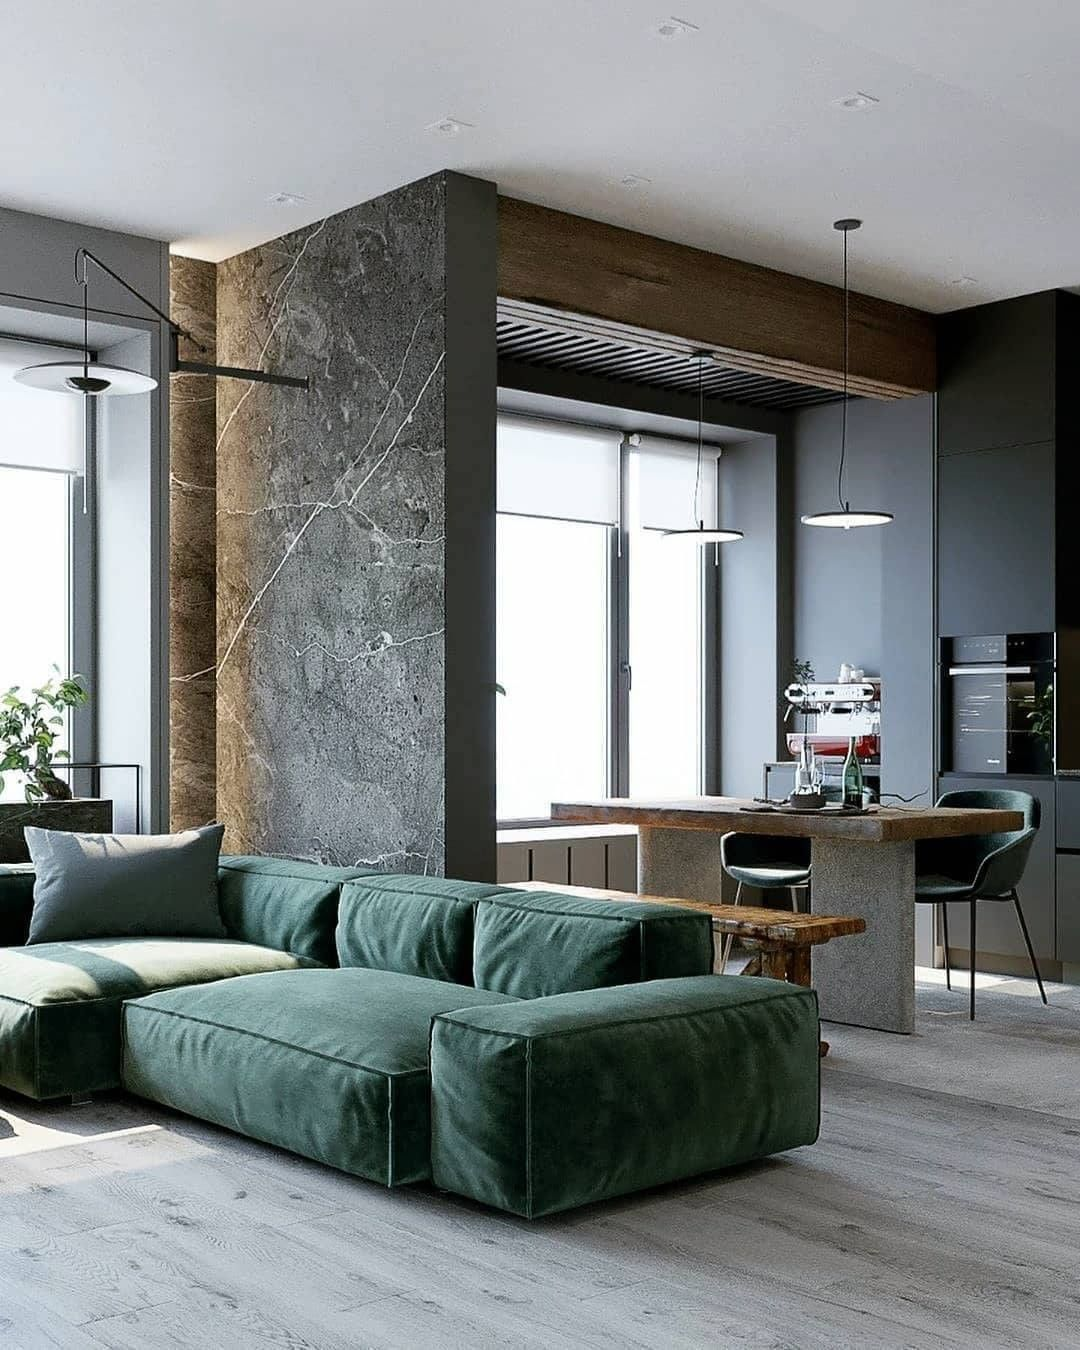 Mi Piace 627 Commenti 3 Covet House Covethouse Su Instagram A Bit Of Inspiration Coming Your Way In 2020 Interior Design Interior Design Your Dream House